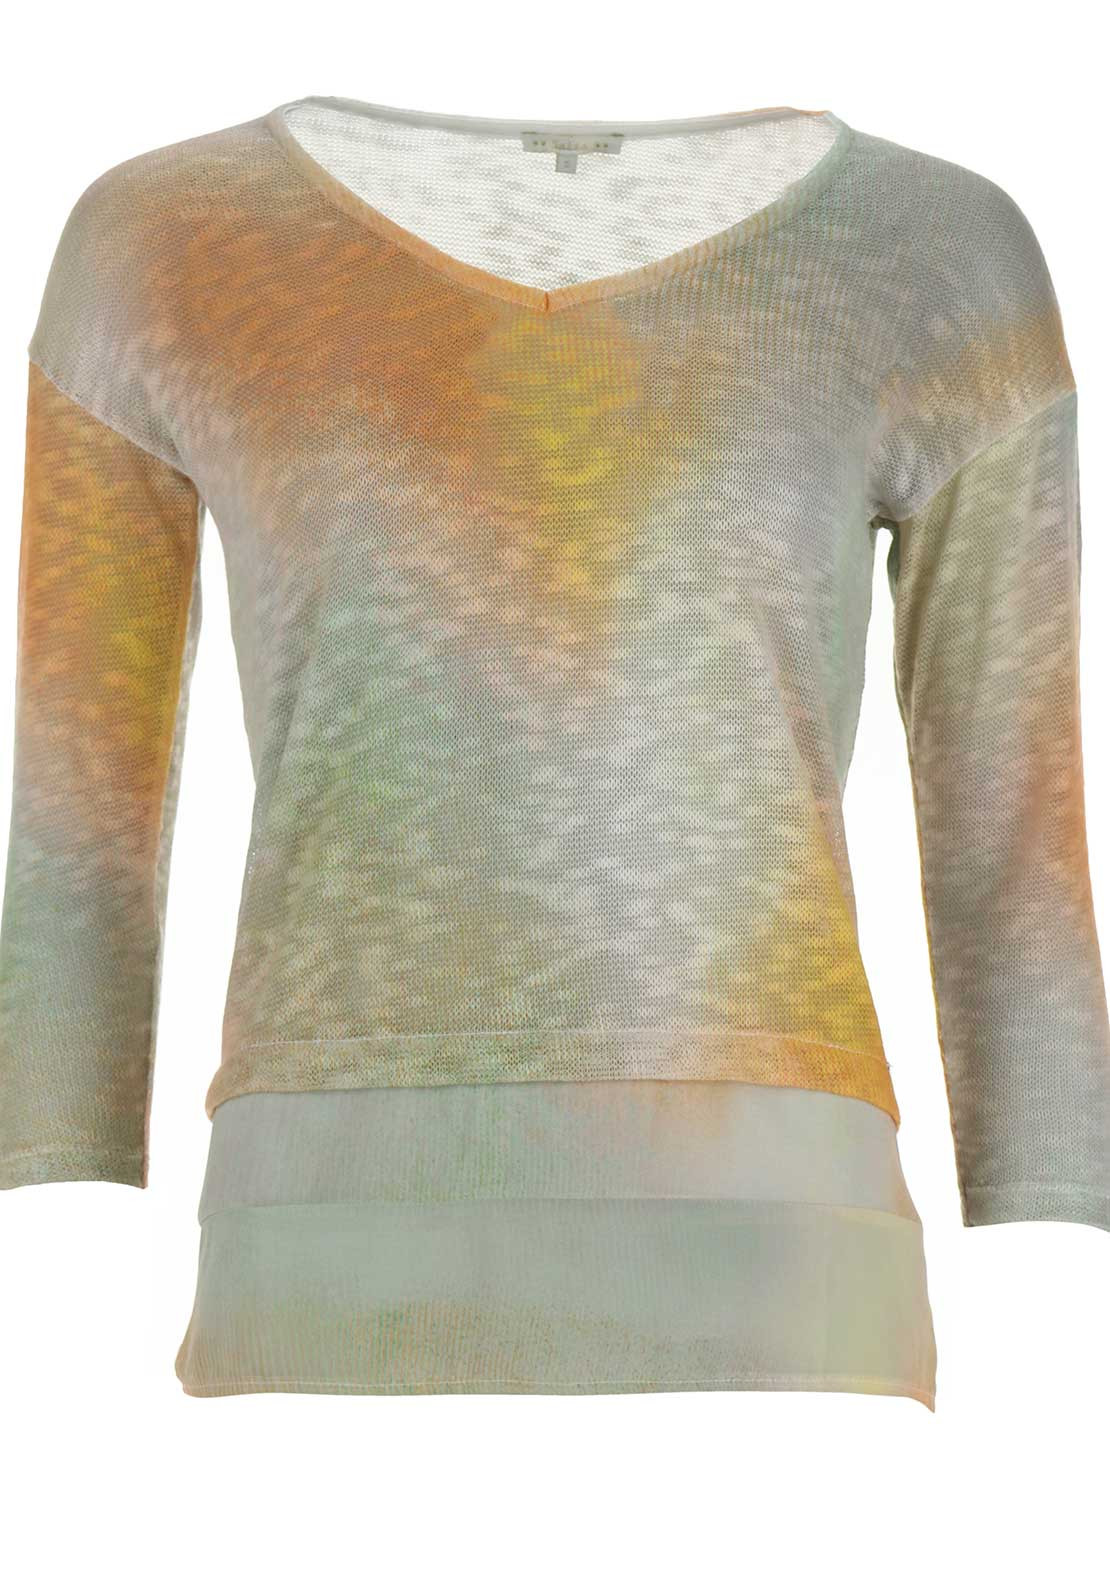 Salsa Majorca Semi Sheer Knitted Jumper, Multi-Coloured